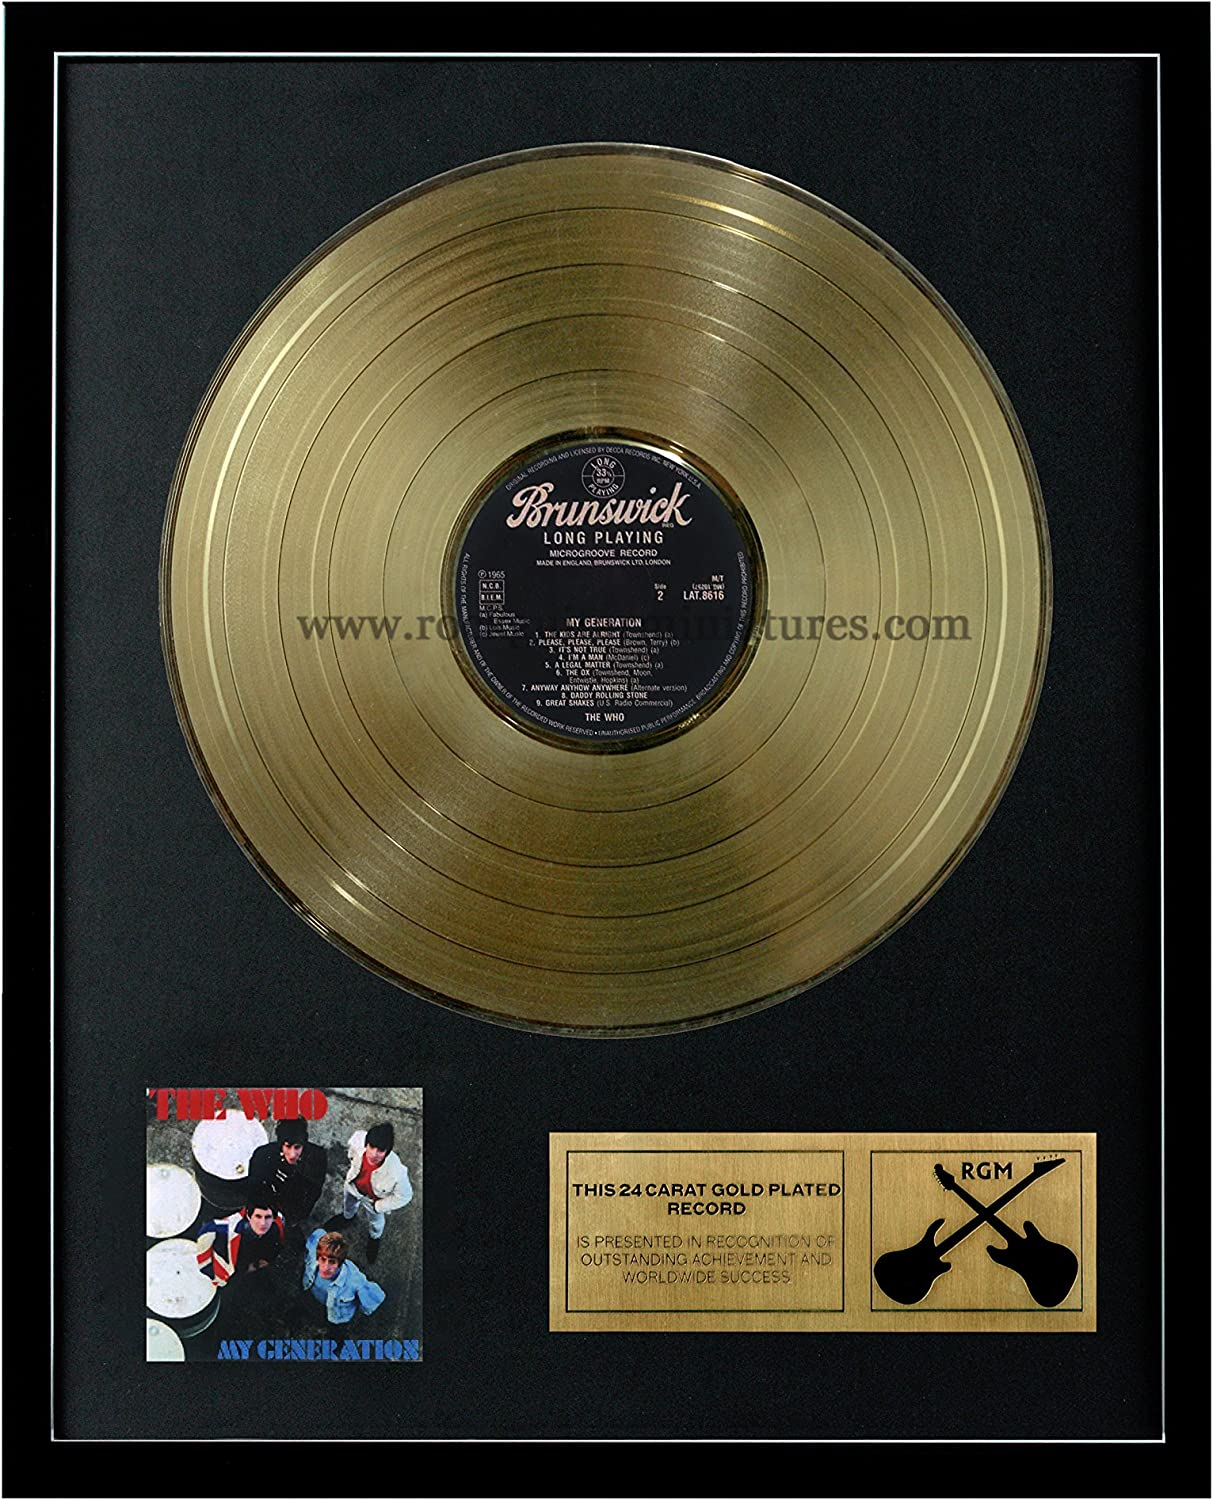 RGM1005 The Who My Generation gold Plated LP 12